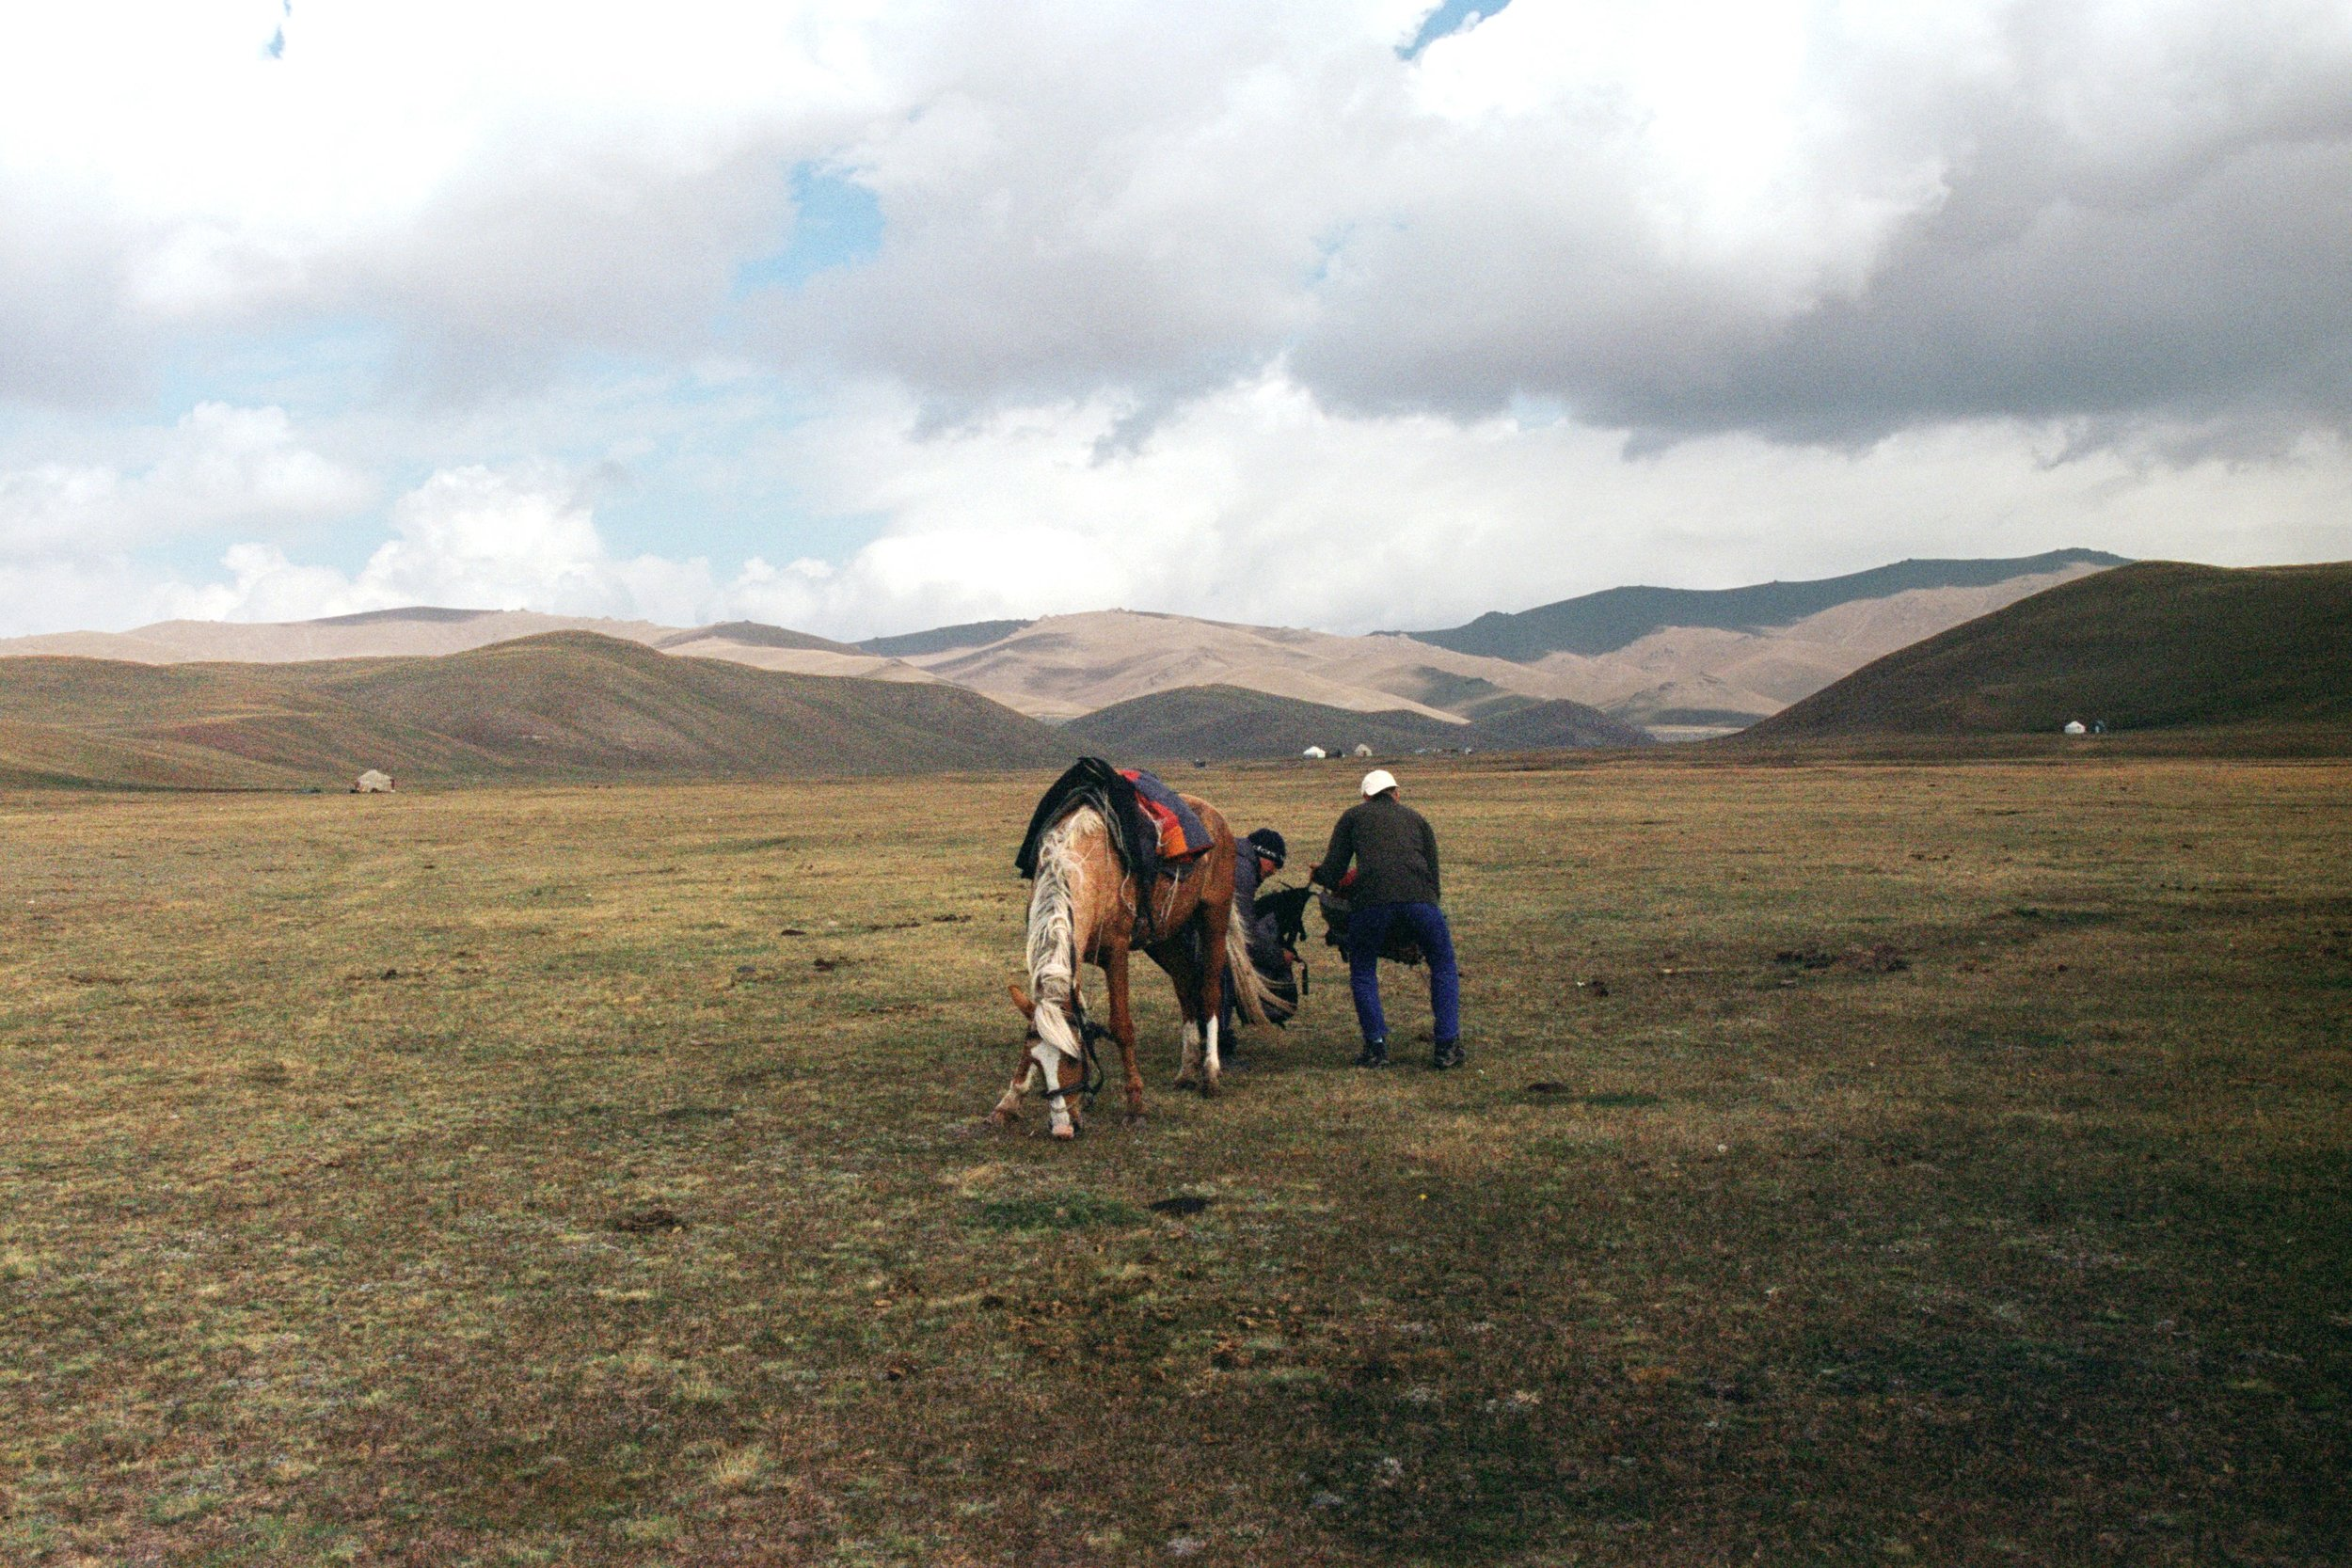 Finally we make it to Son Kul, Ralph and our guide take down our backpacks from the horses.